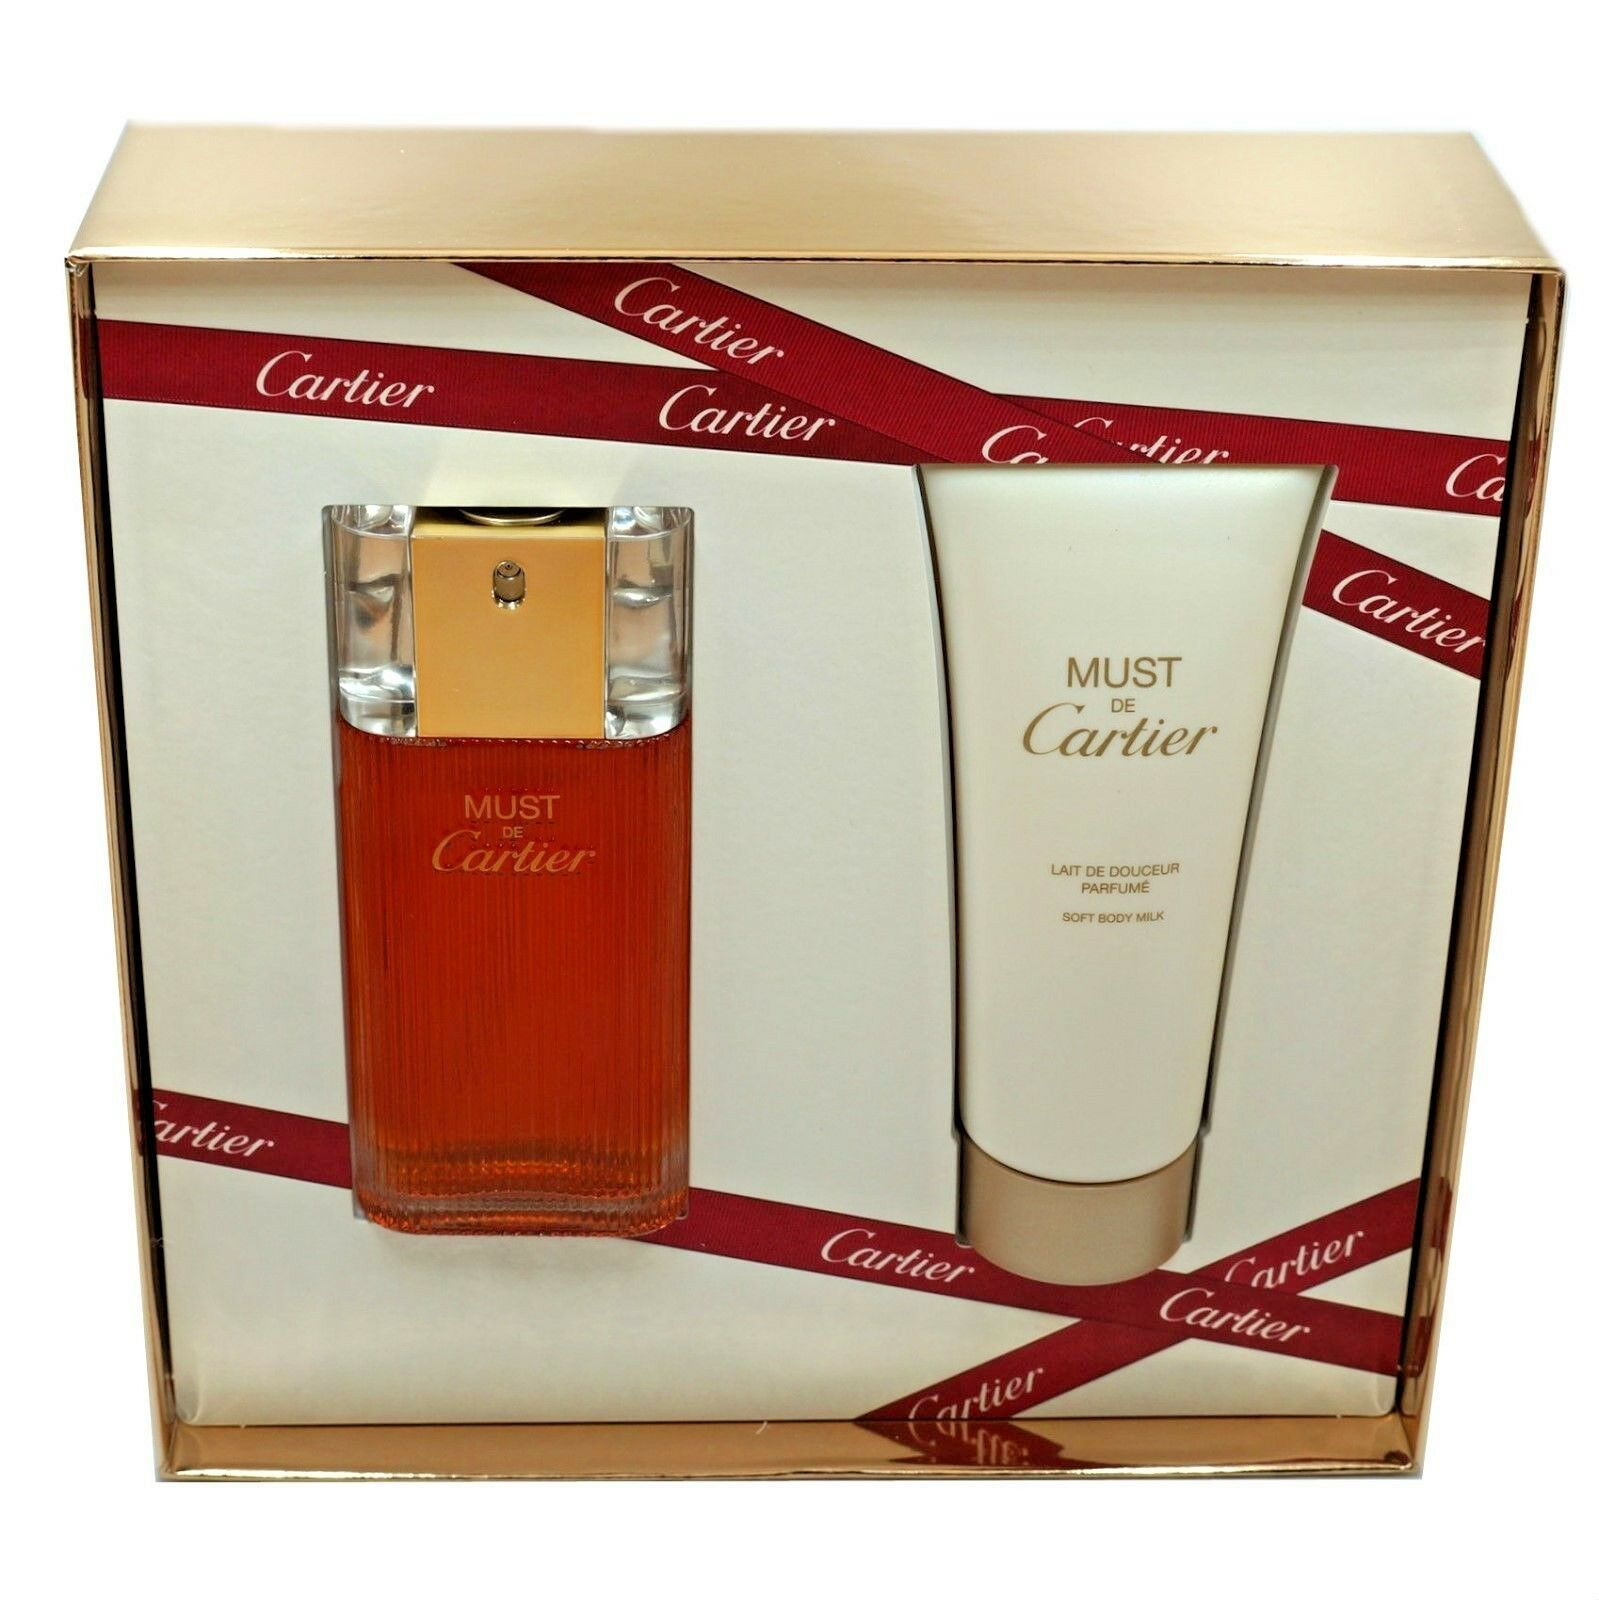 MUST DE CARTIER 2PC GIFT SET EAU DE TOILETTE NATURAL SPRAY 50ML NIB image 2